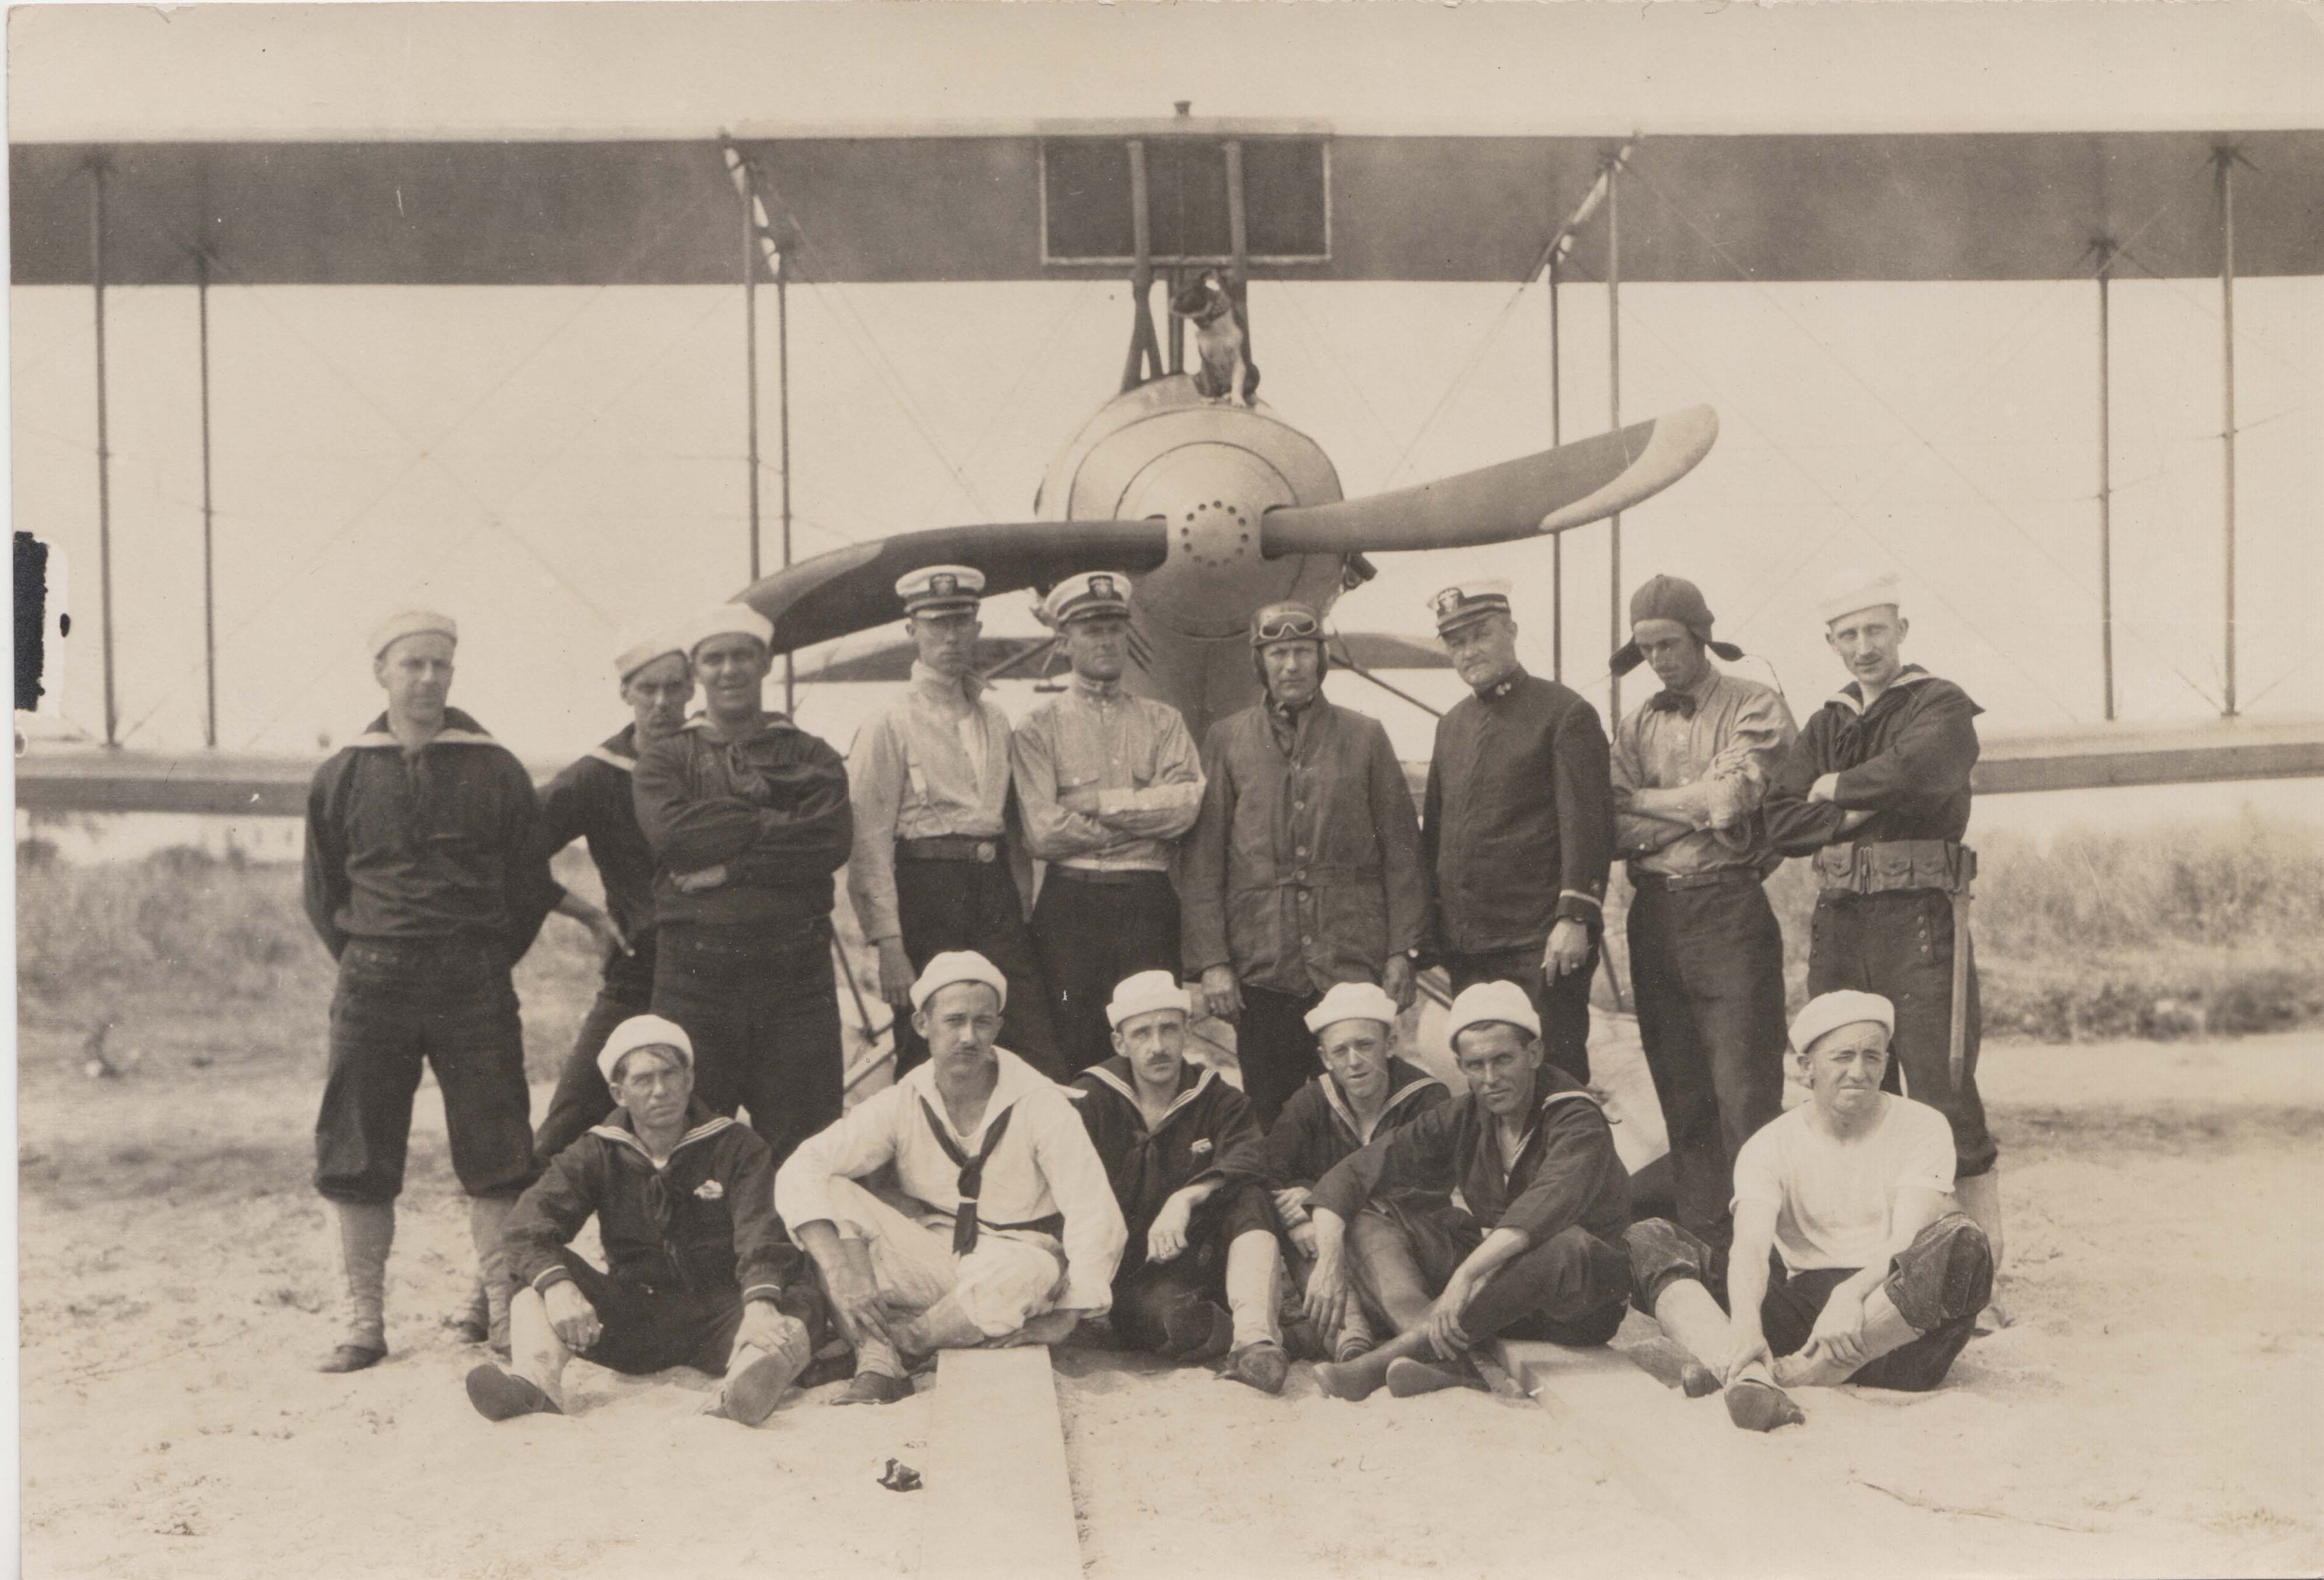 0113 Officers and Pilots in front of plane